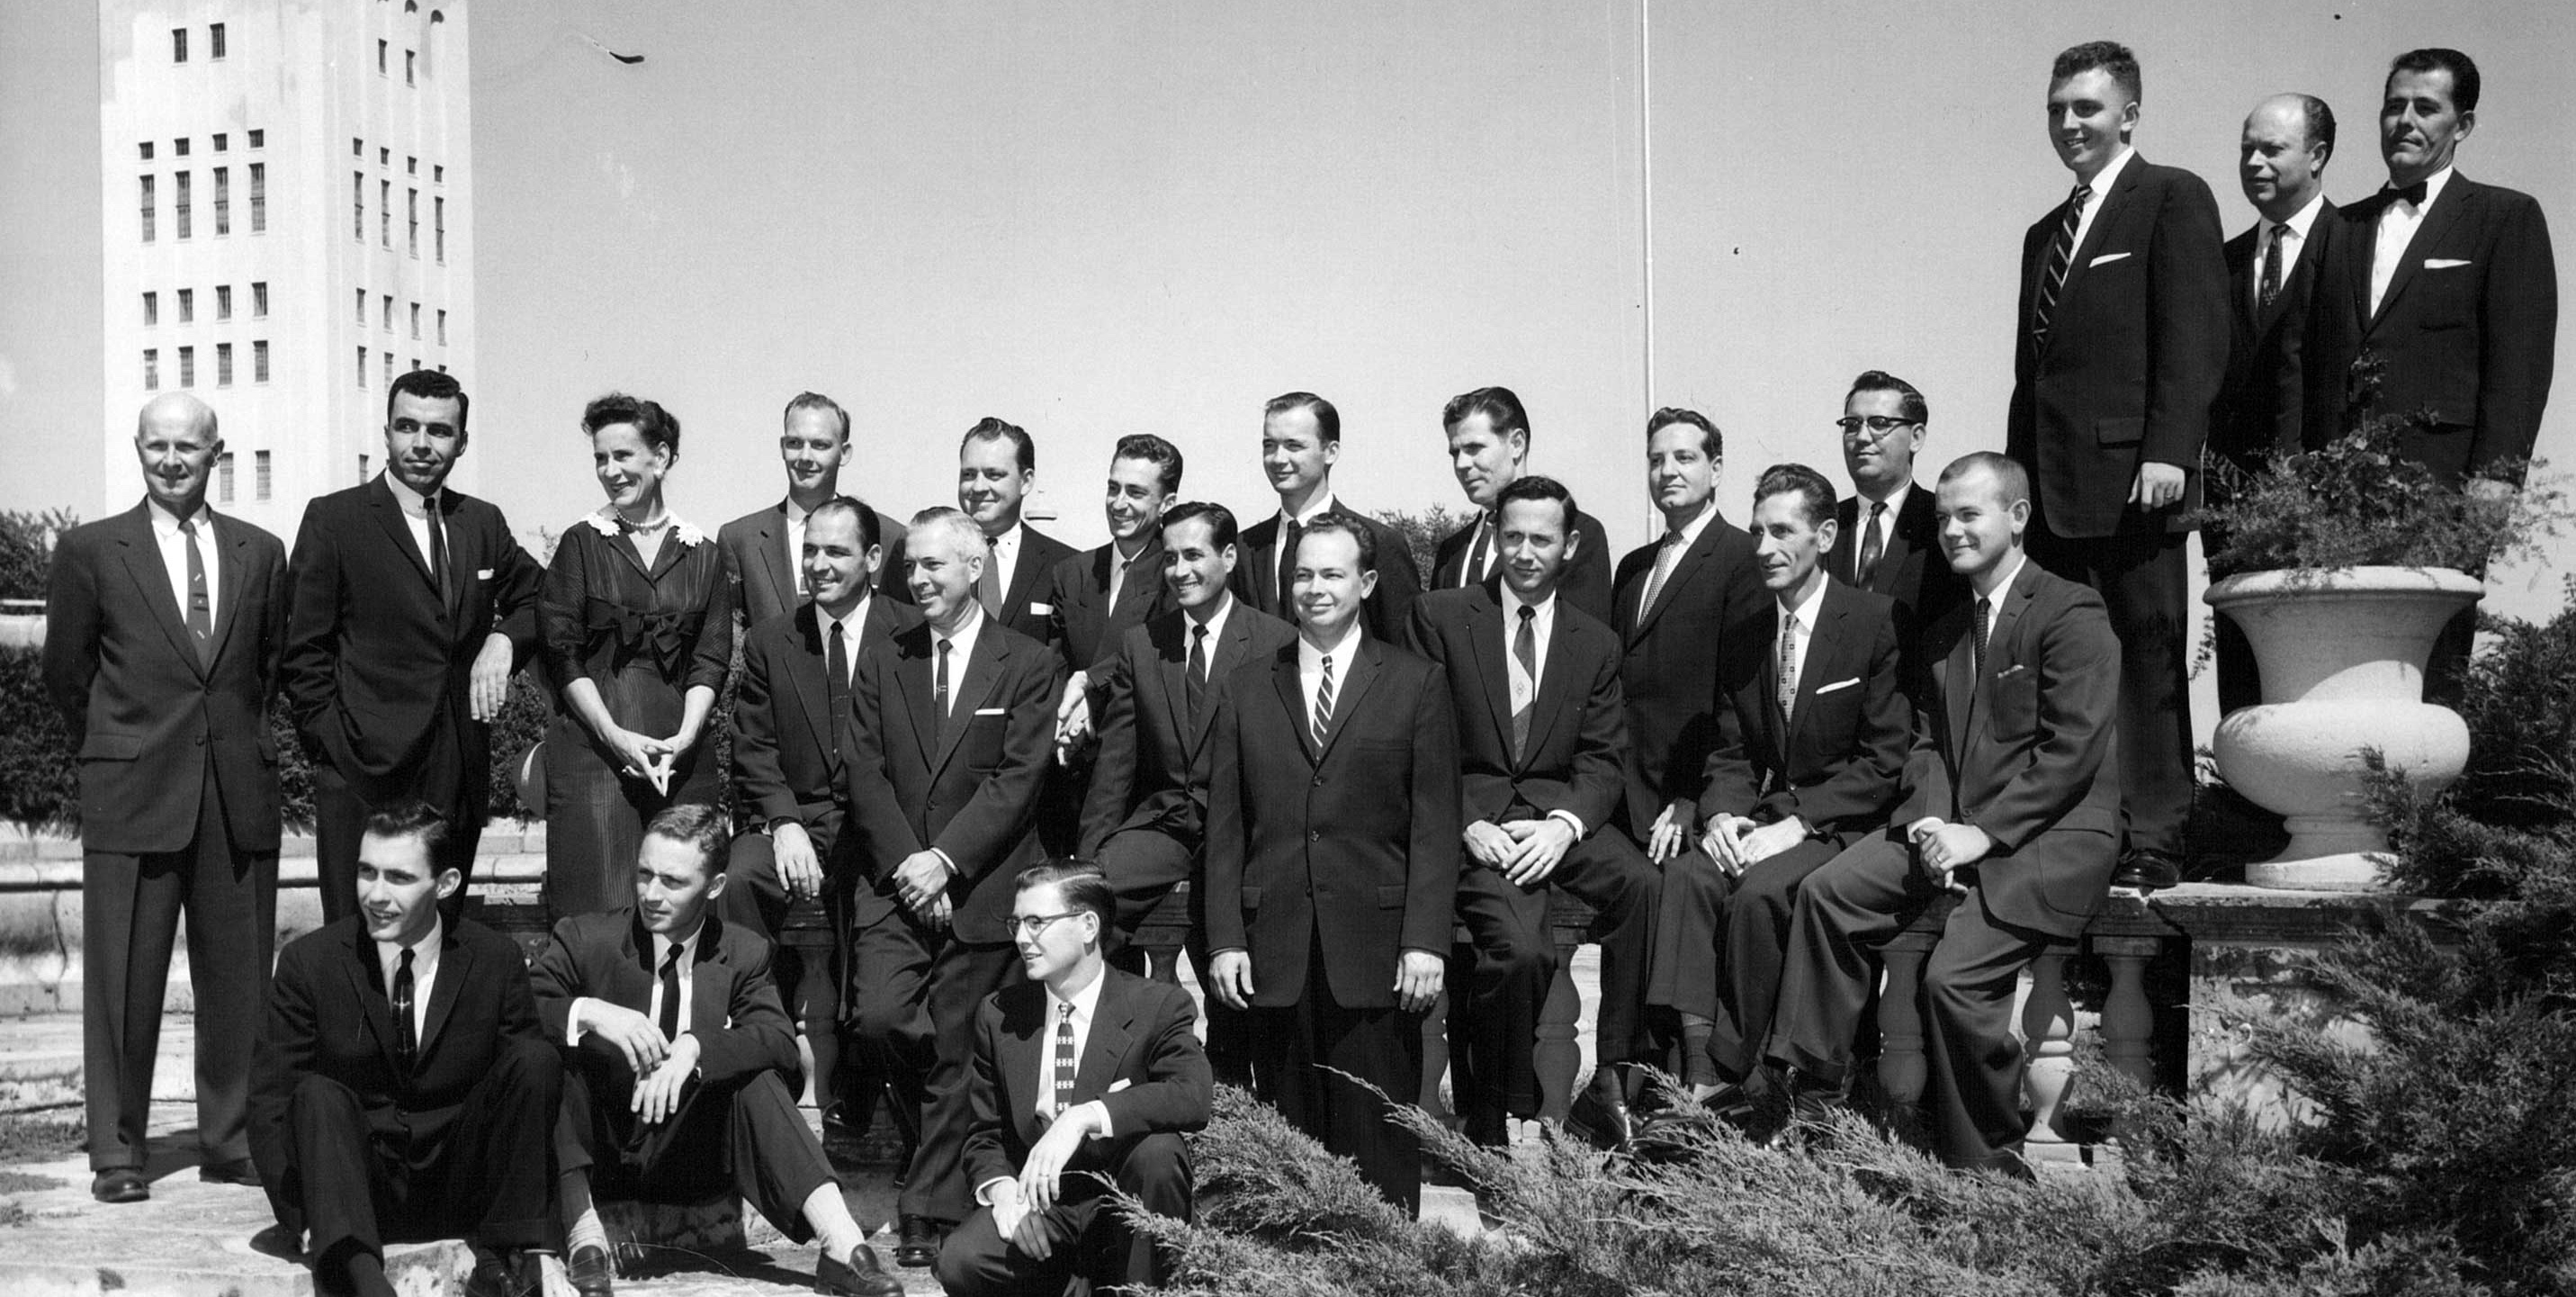 1957 Unity Ministerial Students